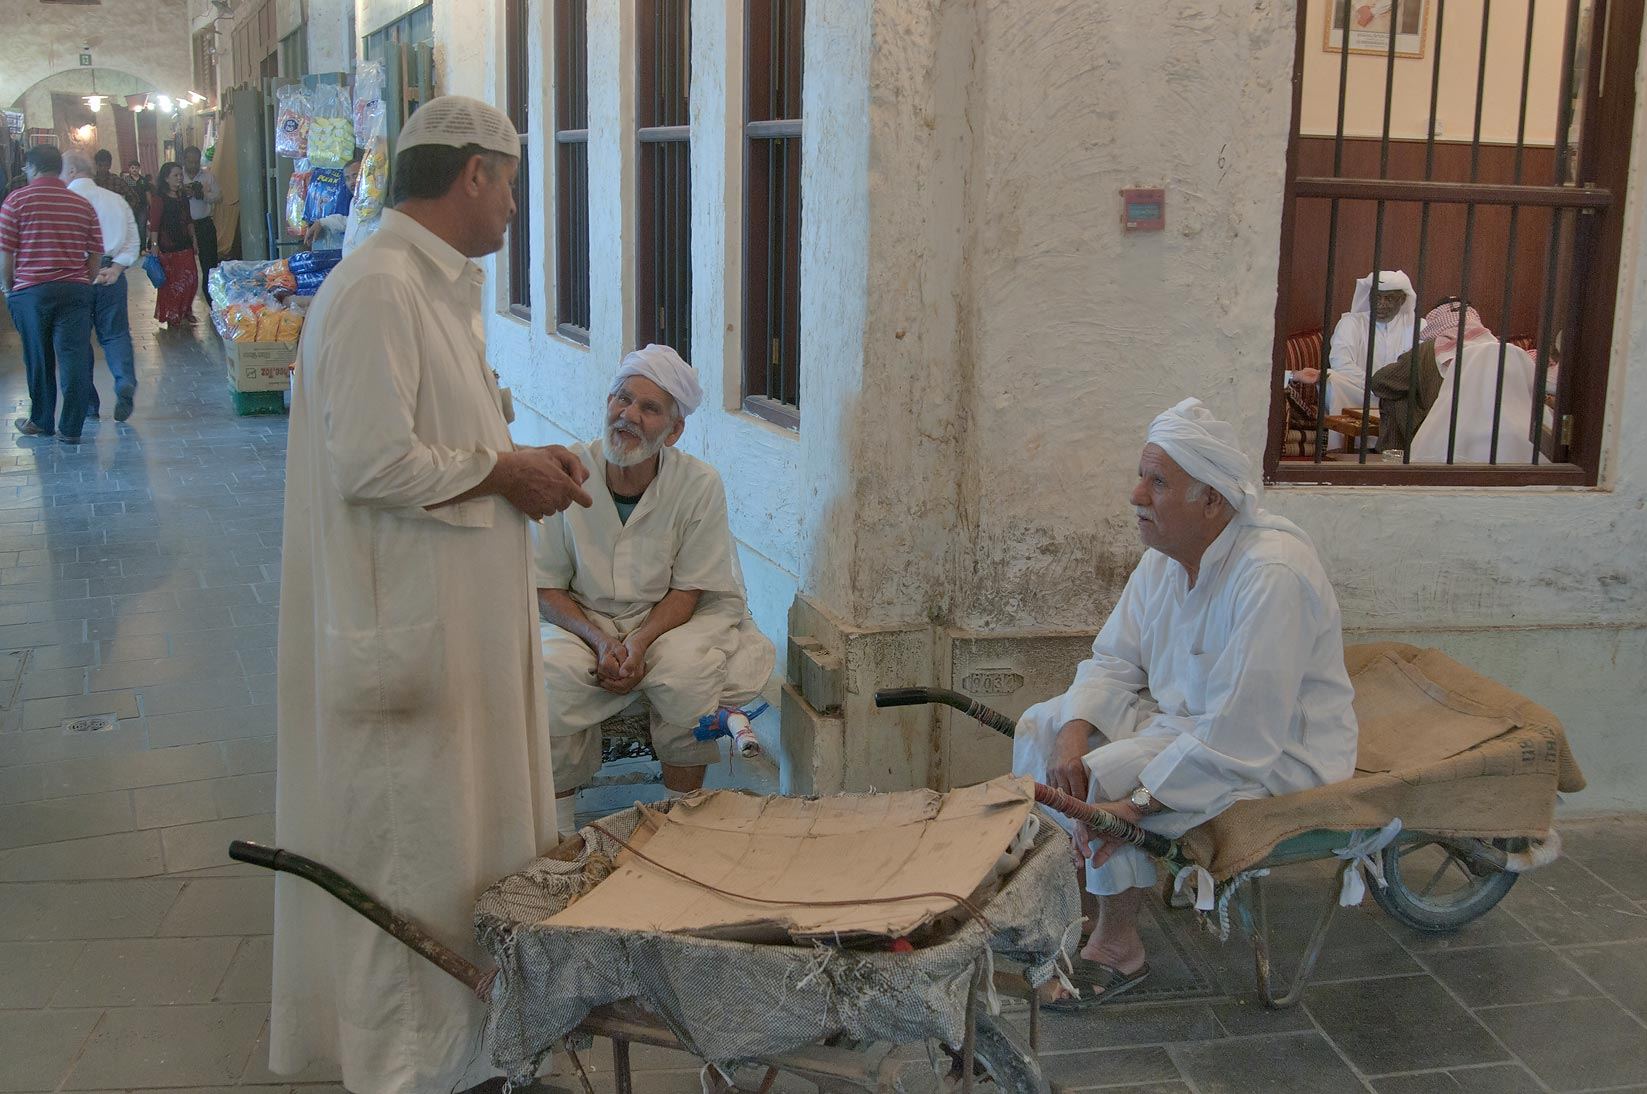 Chatting at a corner in Souq Waqif (Old Market). Doha, Qatar